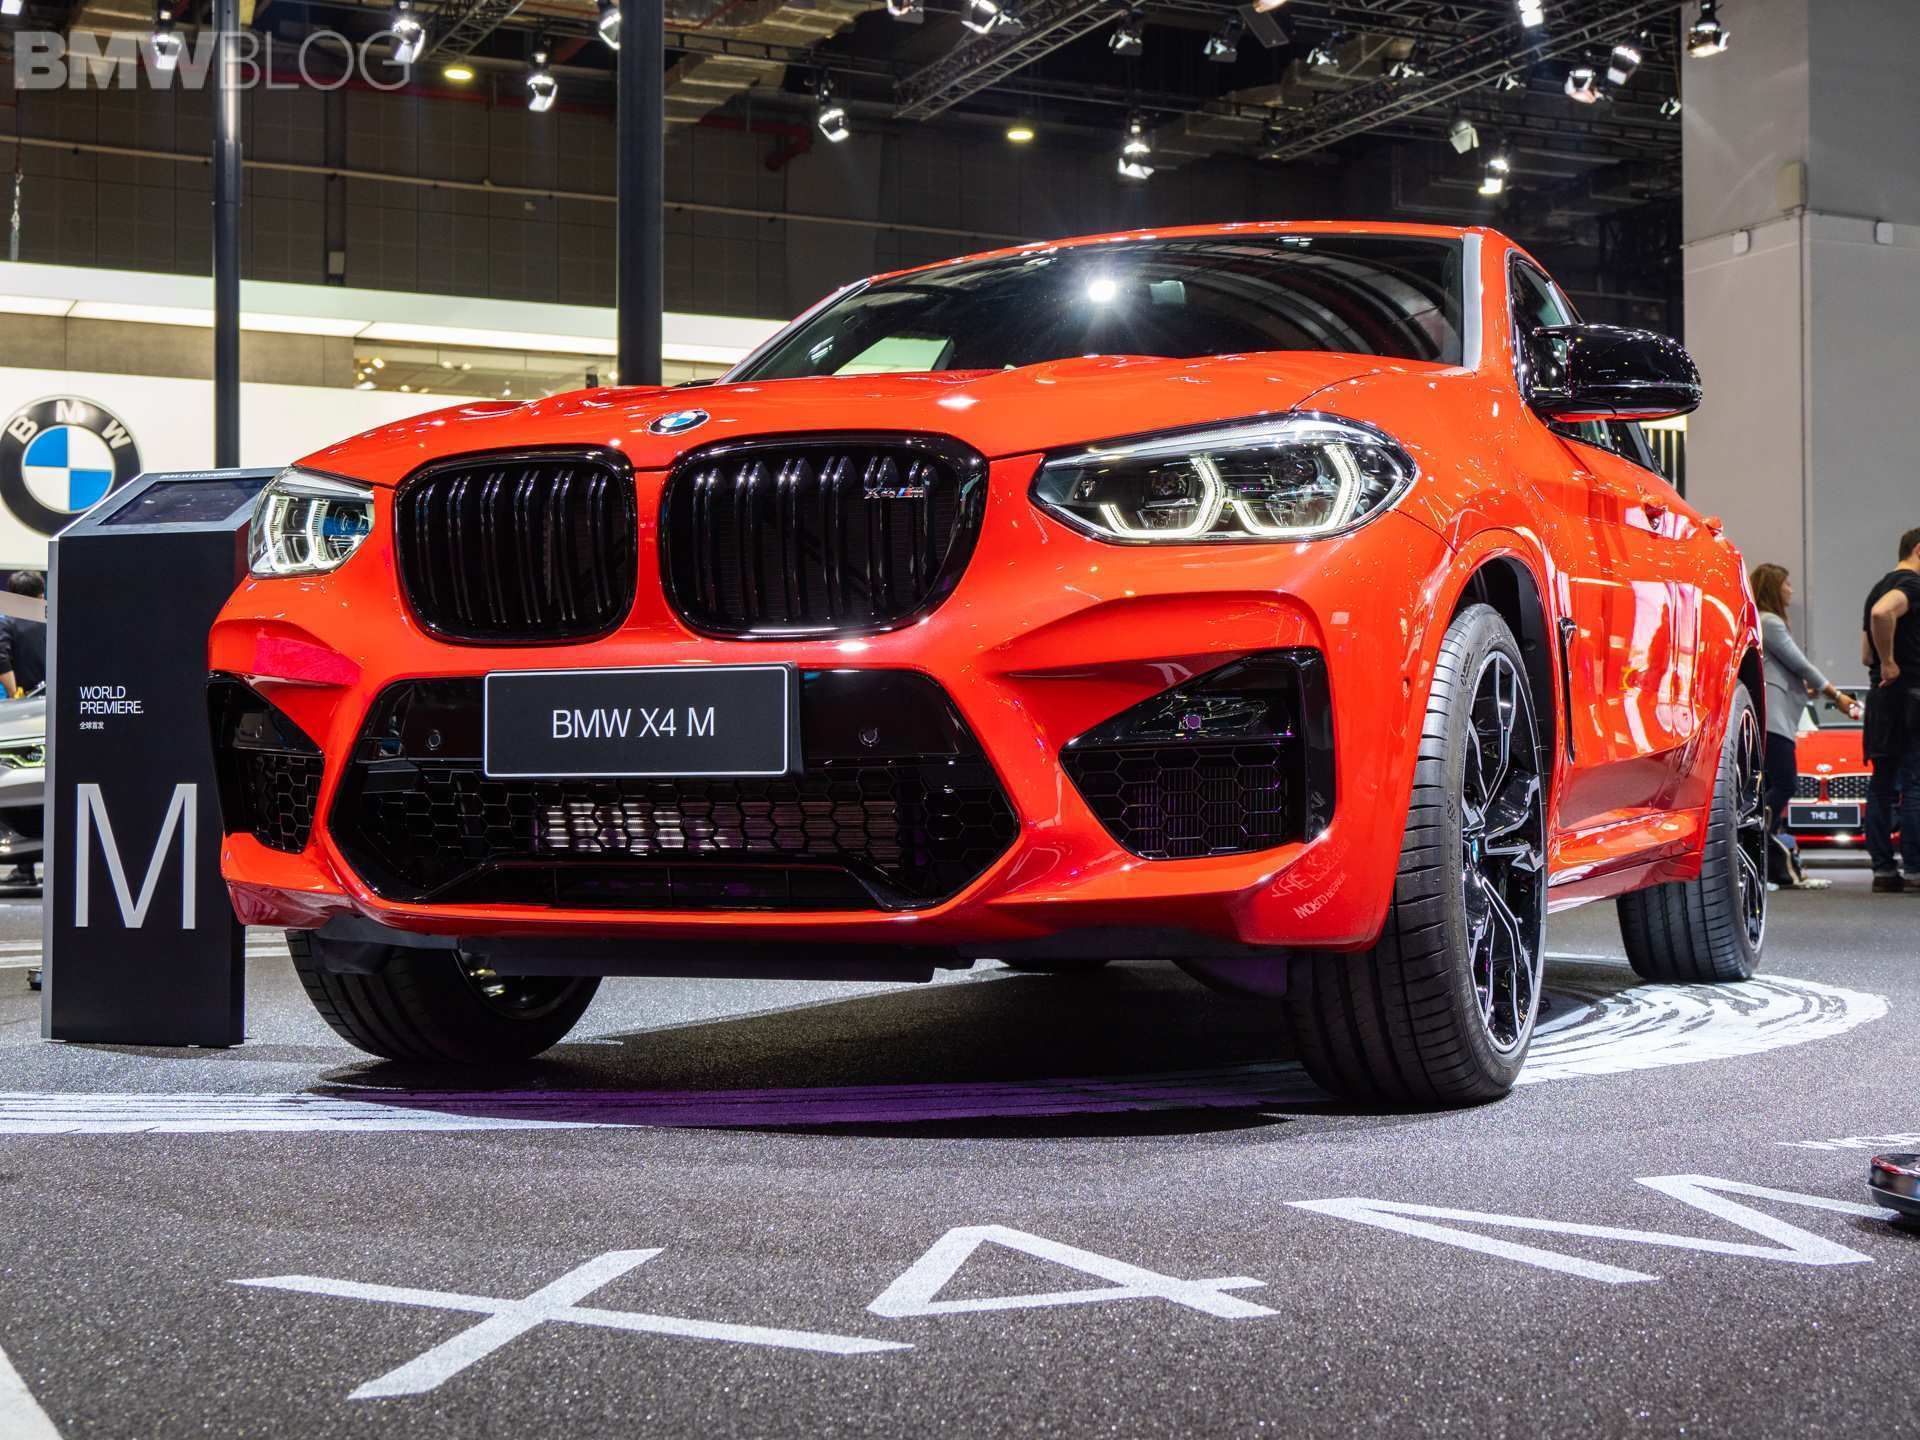 51 The Best 2020 BMW X4 Price And Release Date